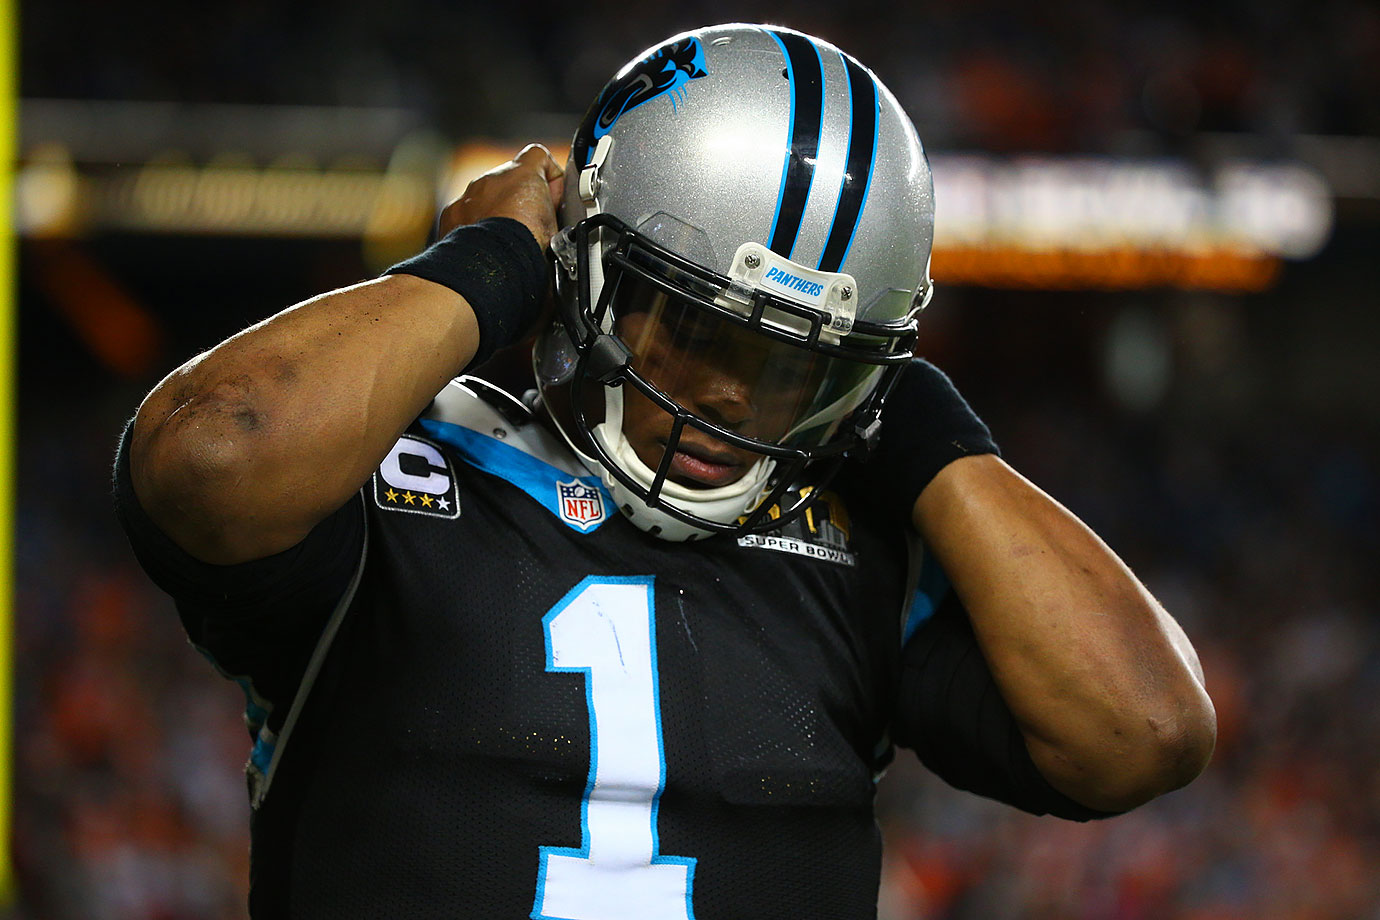 Newton was sacked six times as he struggled in the game against Denver's intimidating pass rush.